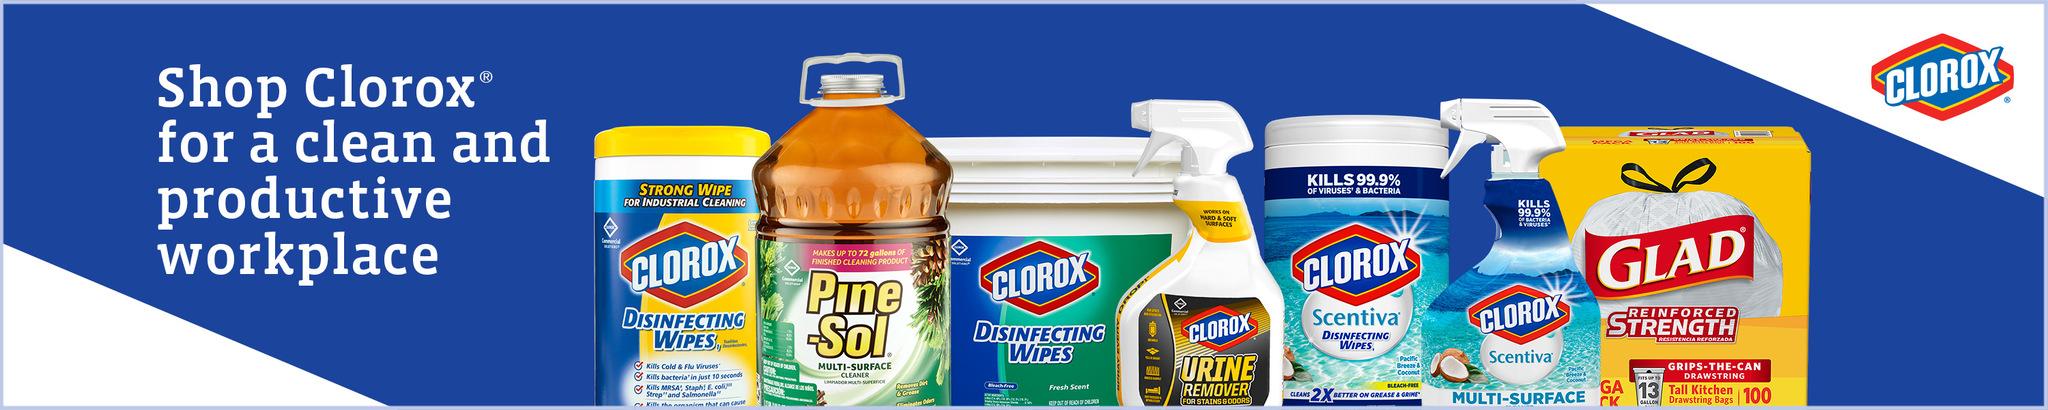 Amazon.com: Clorox Professional Products Company: Cleaners & Disinfectants